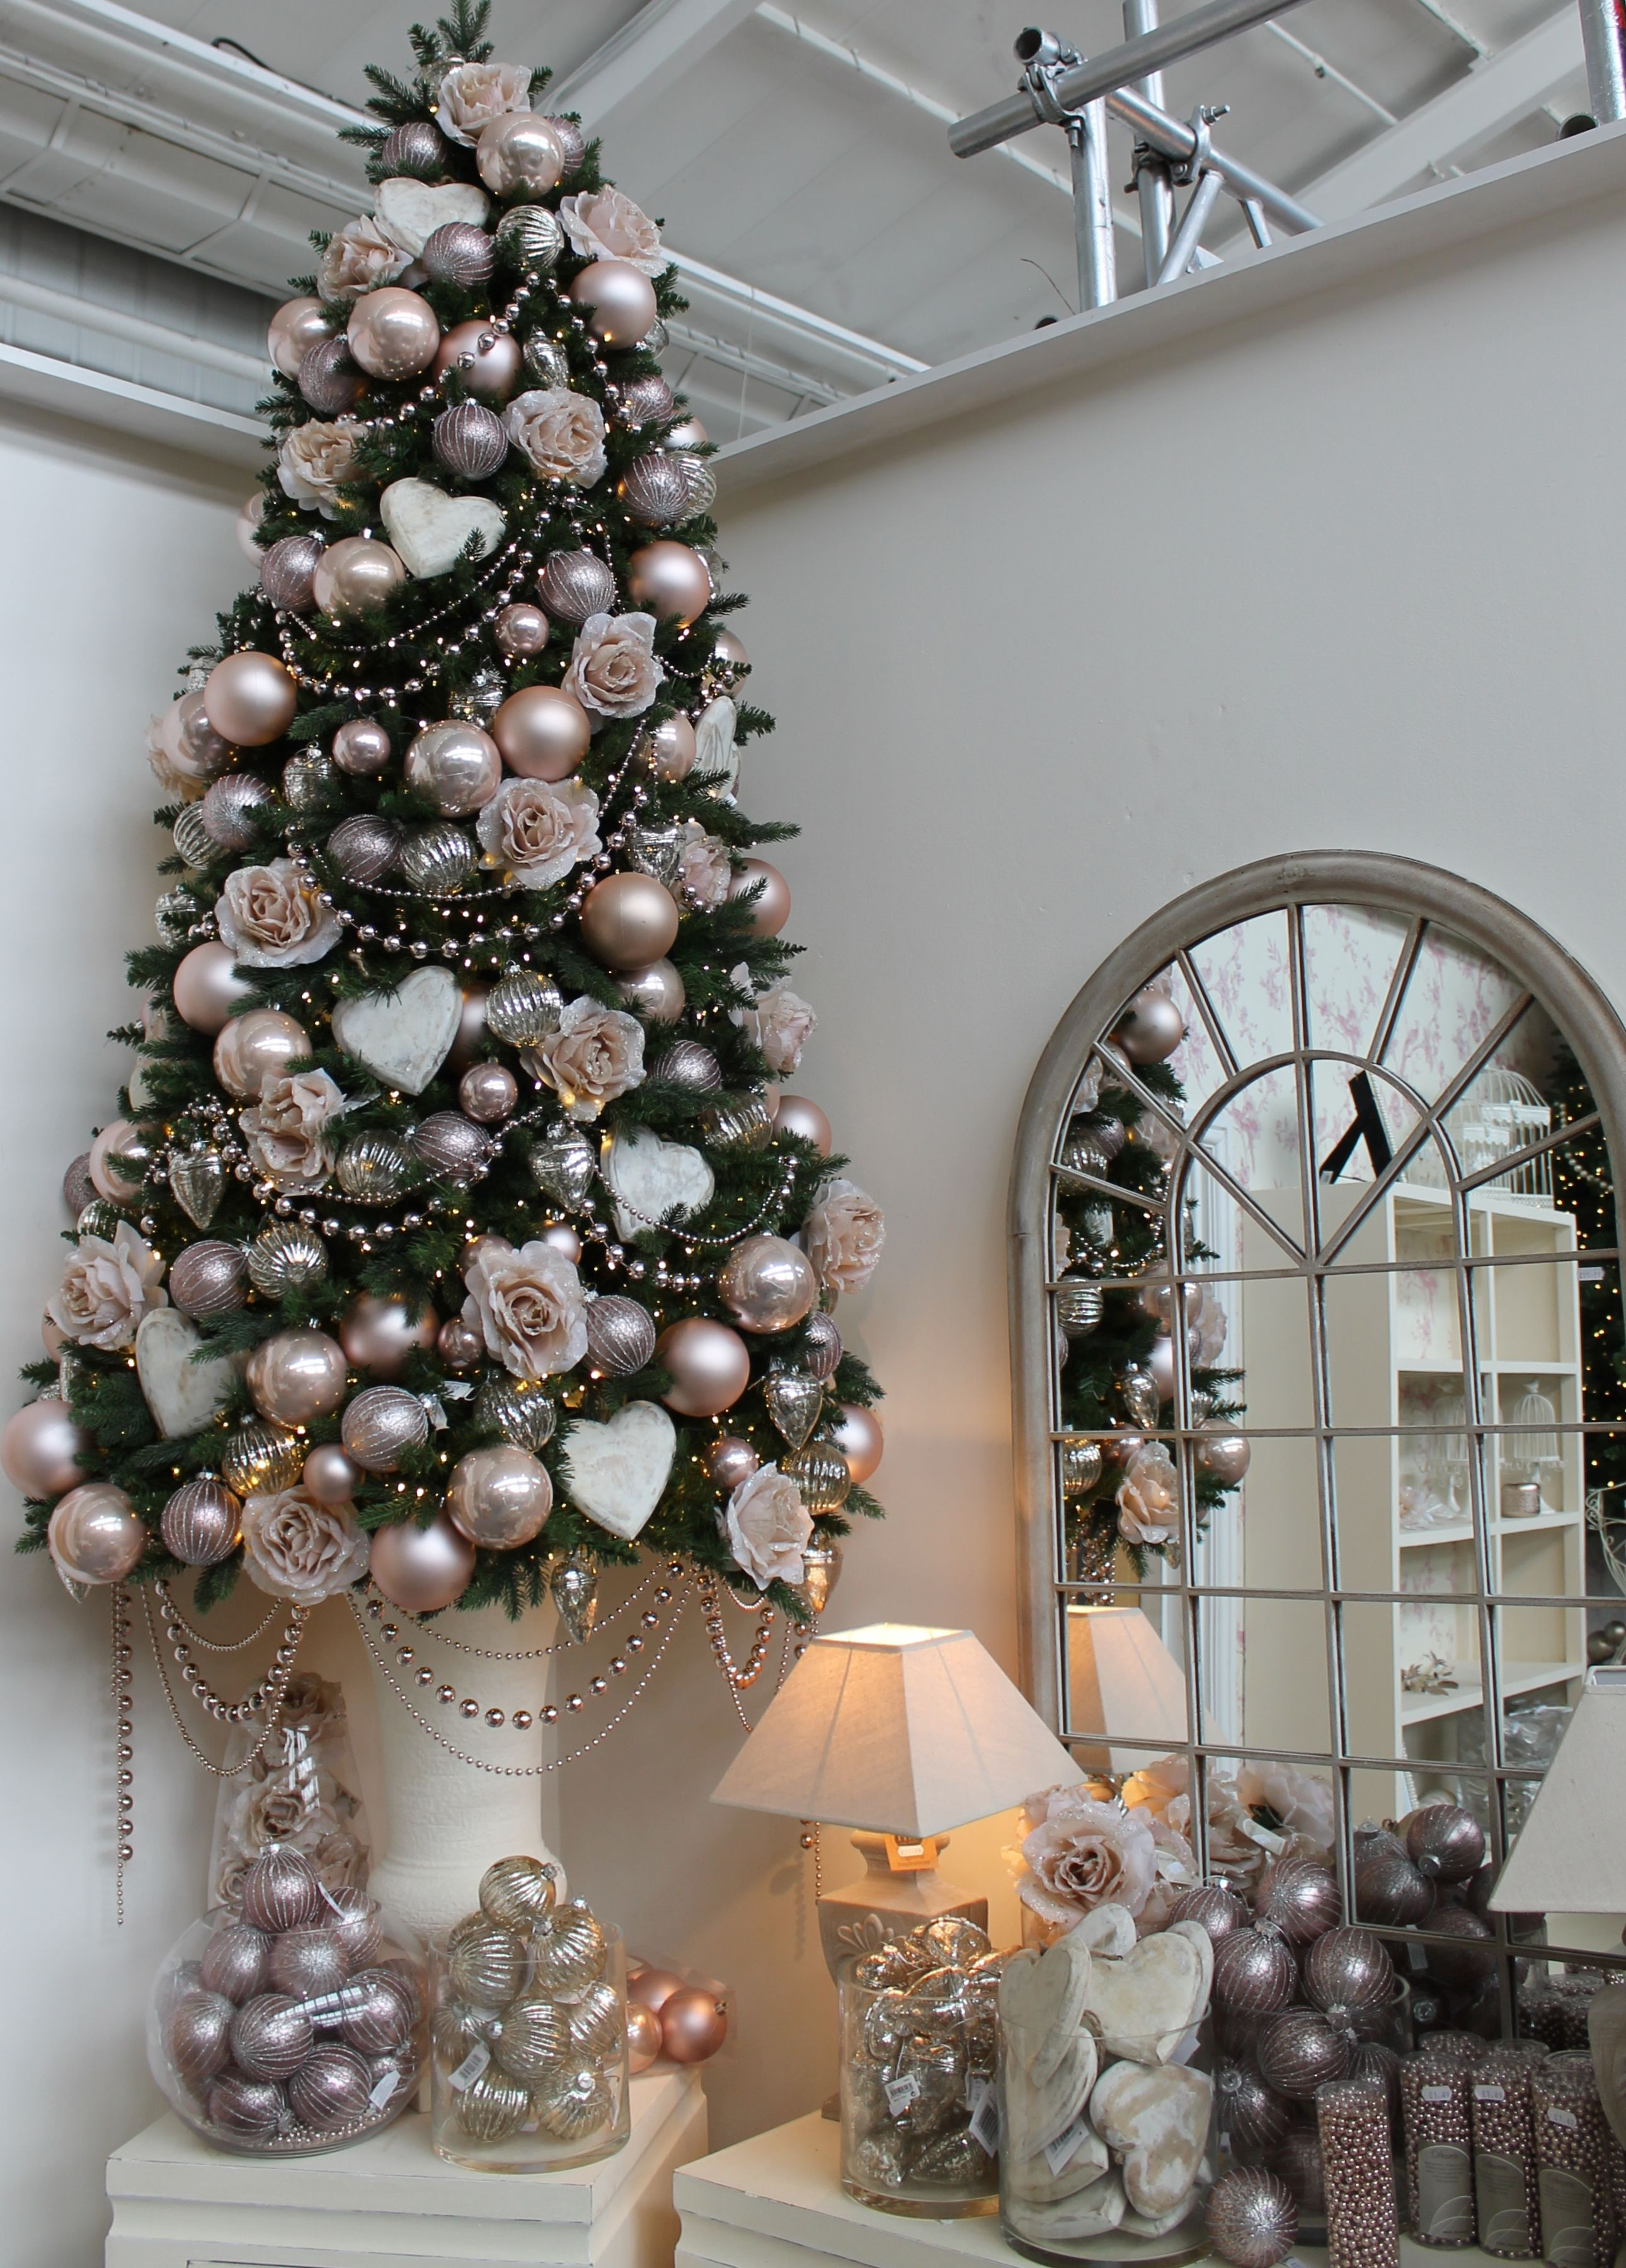 Shabby Chic Weihnachtsbaum Vibrant Romantic Christmas Decorations Cute Tree Design Blush Pink